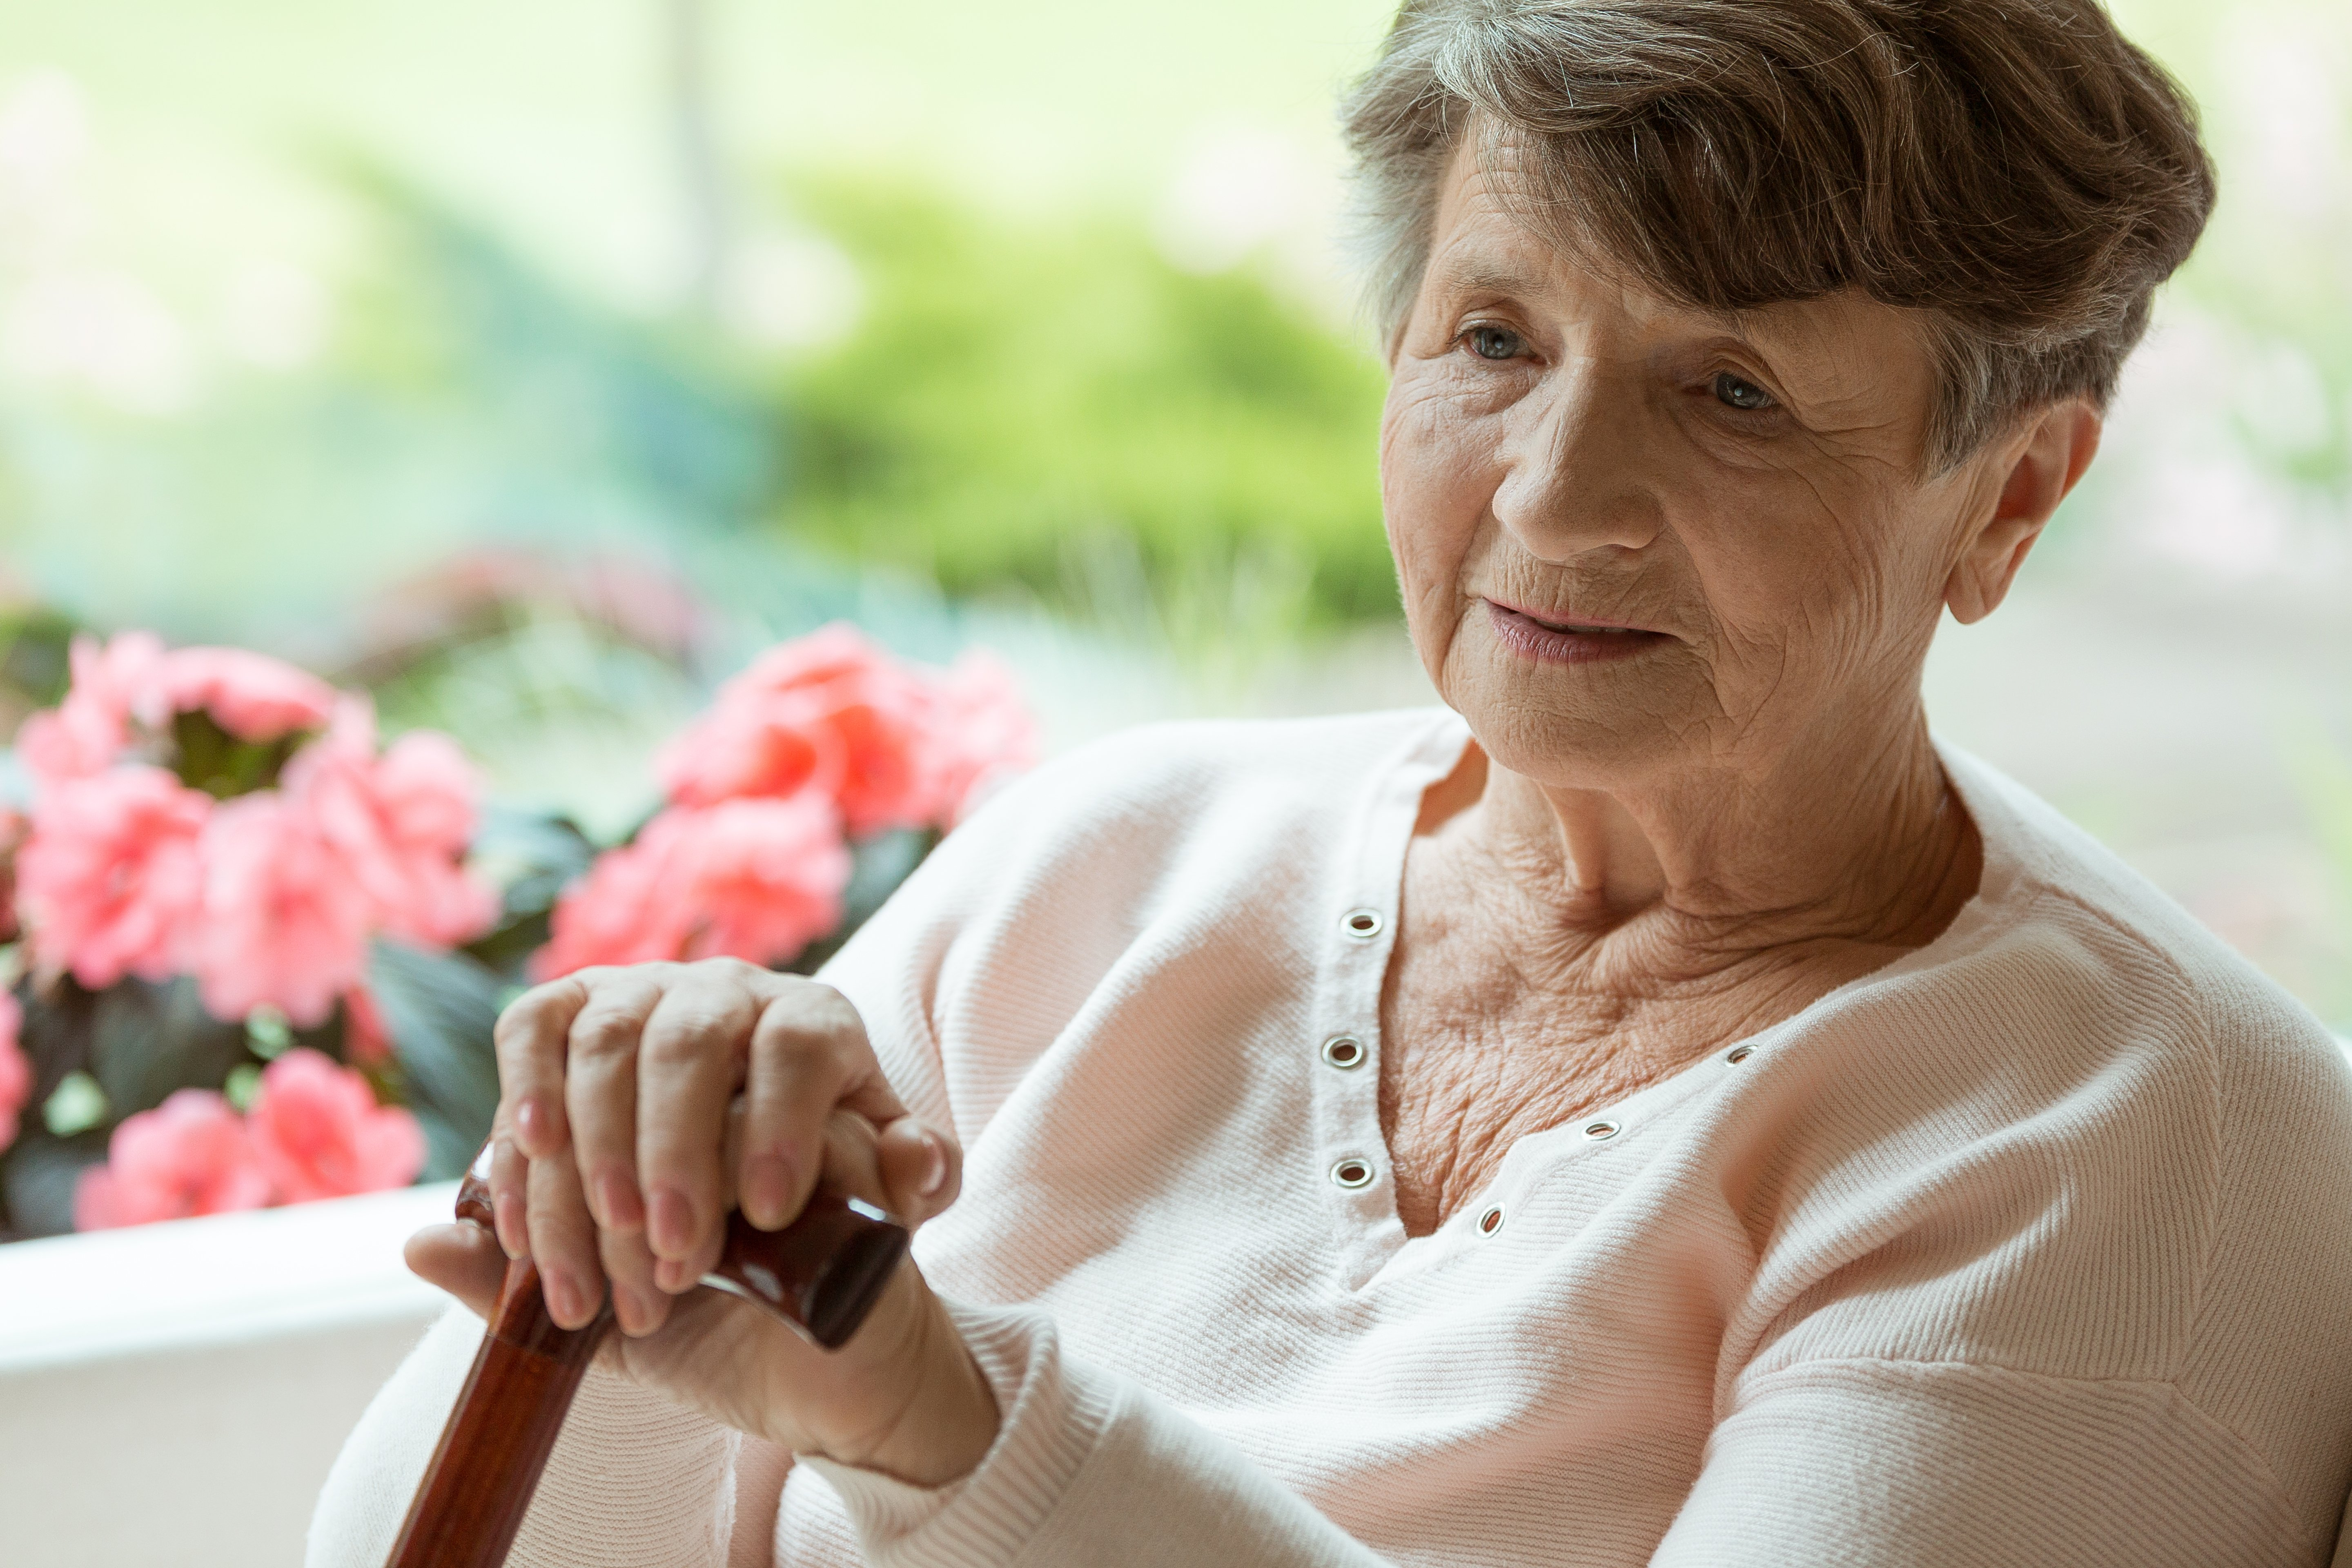 Elder woman sitting on white sofa with walking cane in room with pink flowers | Photo: Shutterstock.com